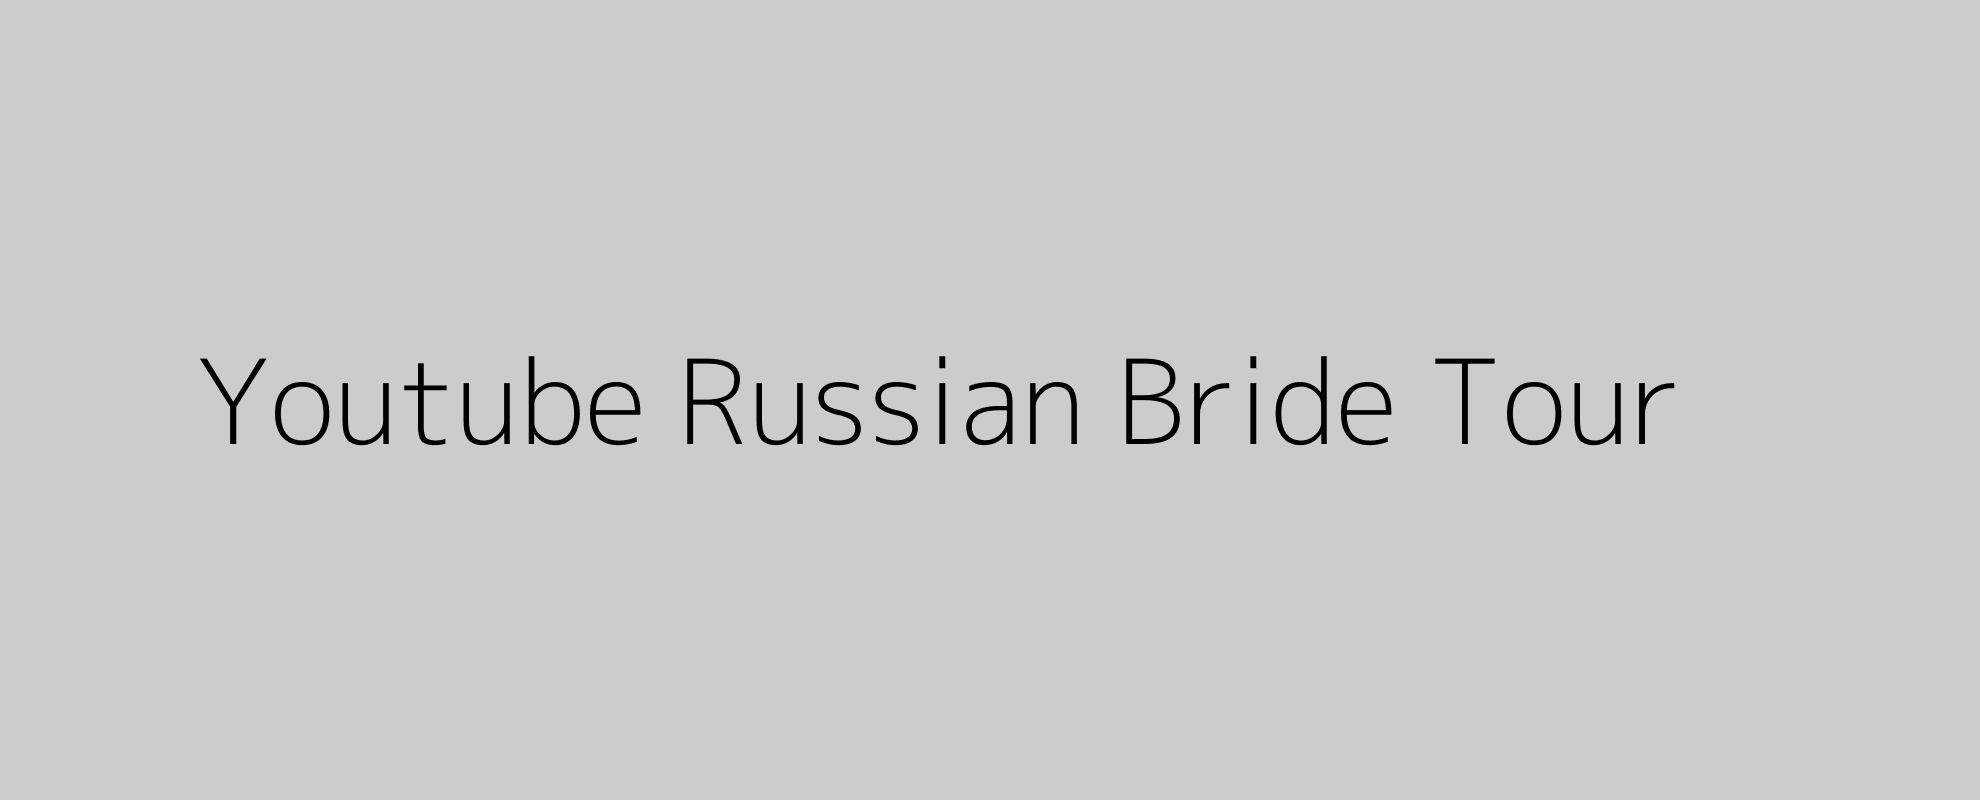 Youtube Russian Bride Tour